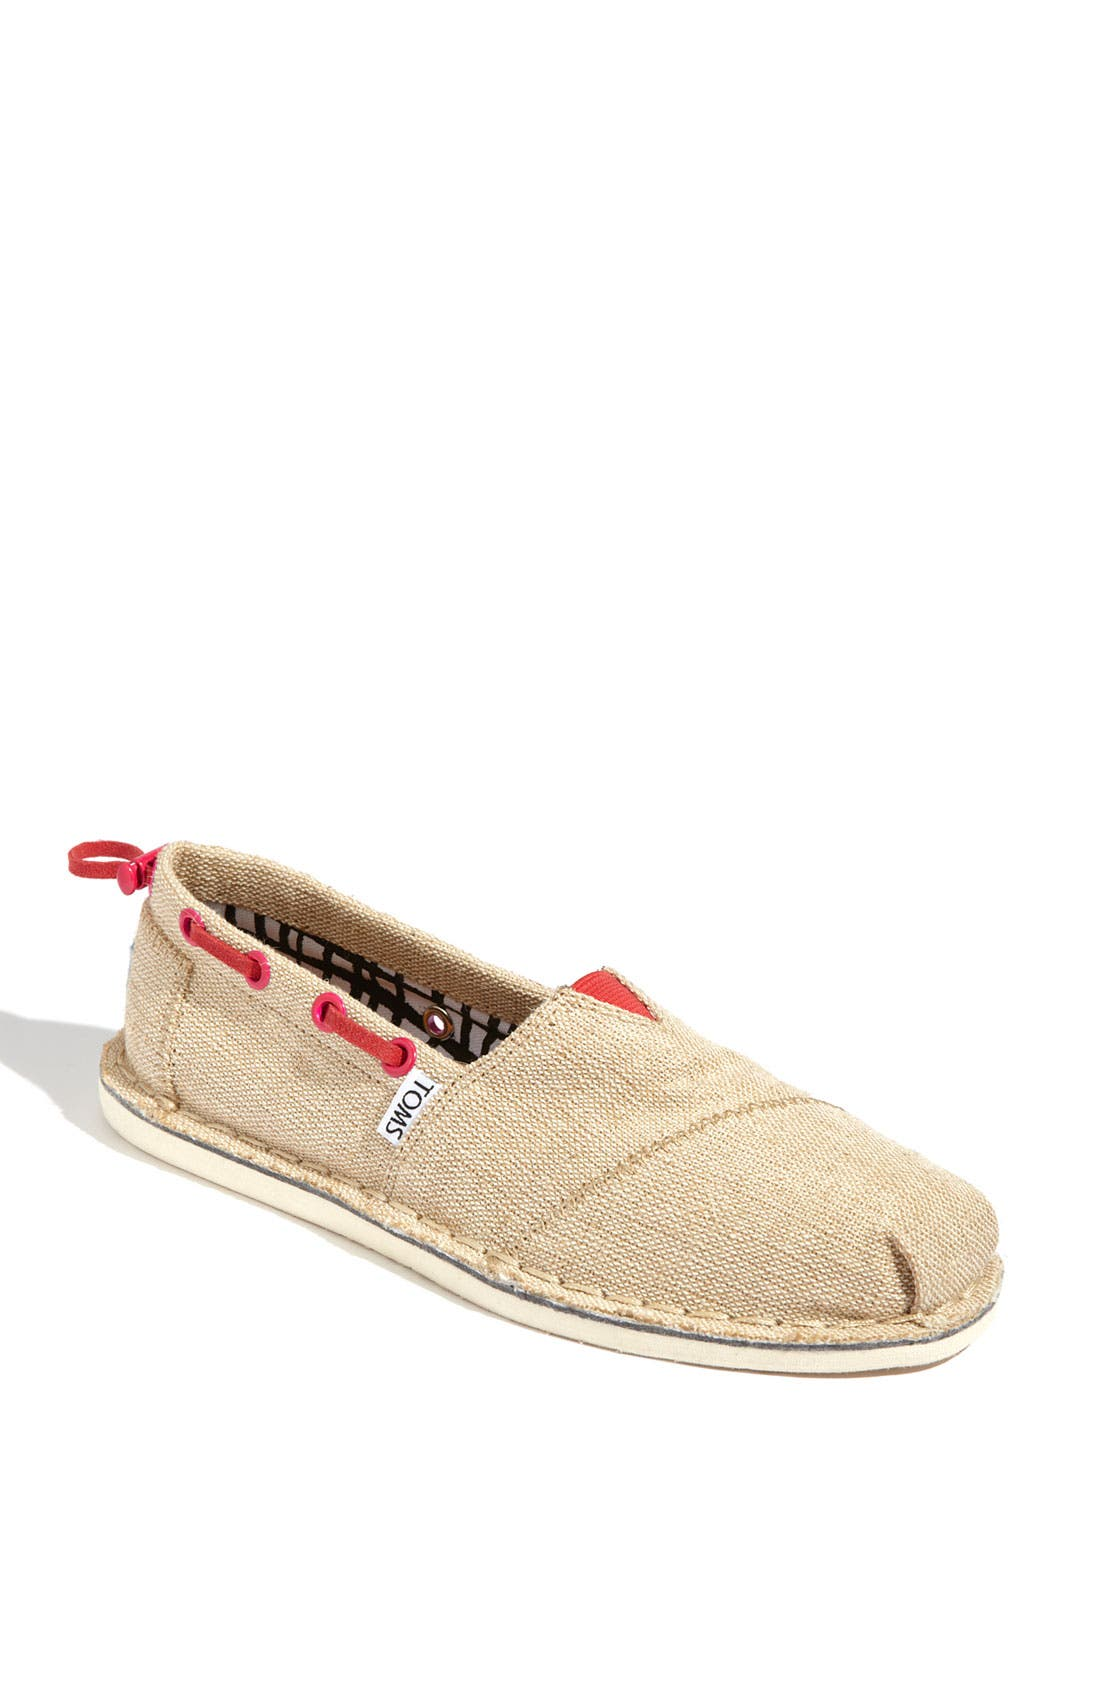 Alternate Image 1 Selected - TOMS 'Bimini' Slip-On (Women)